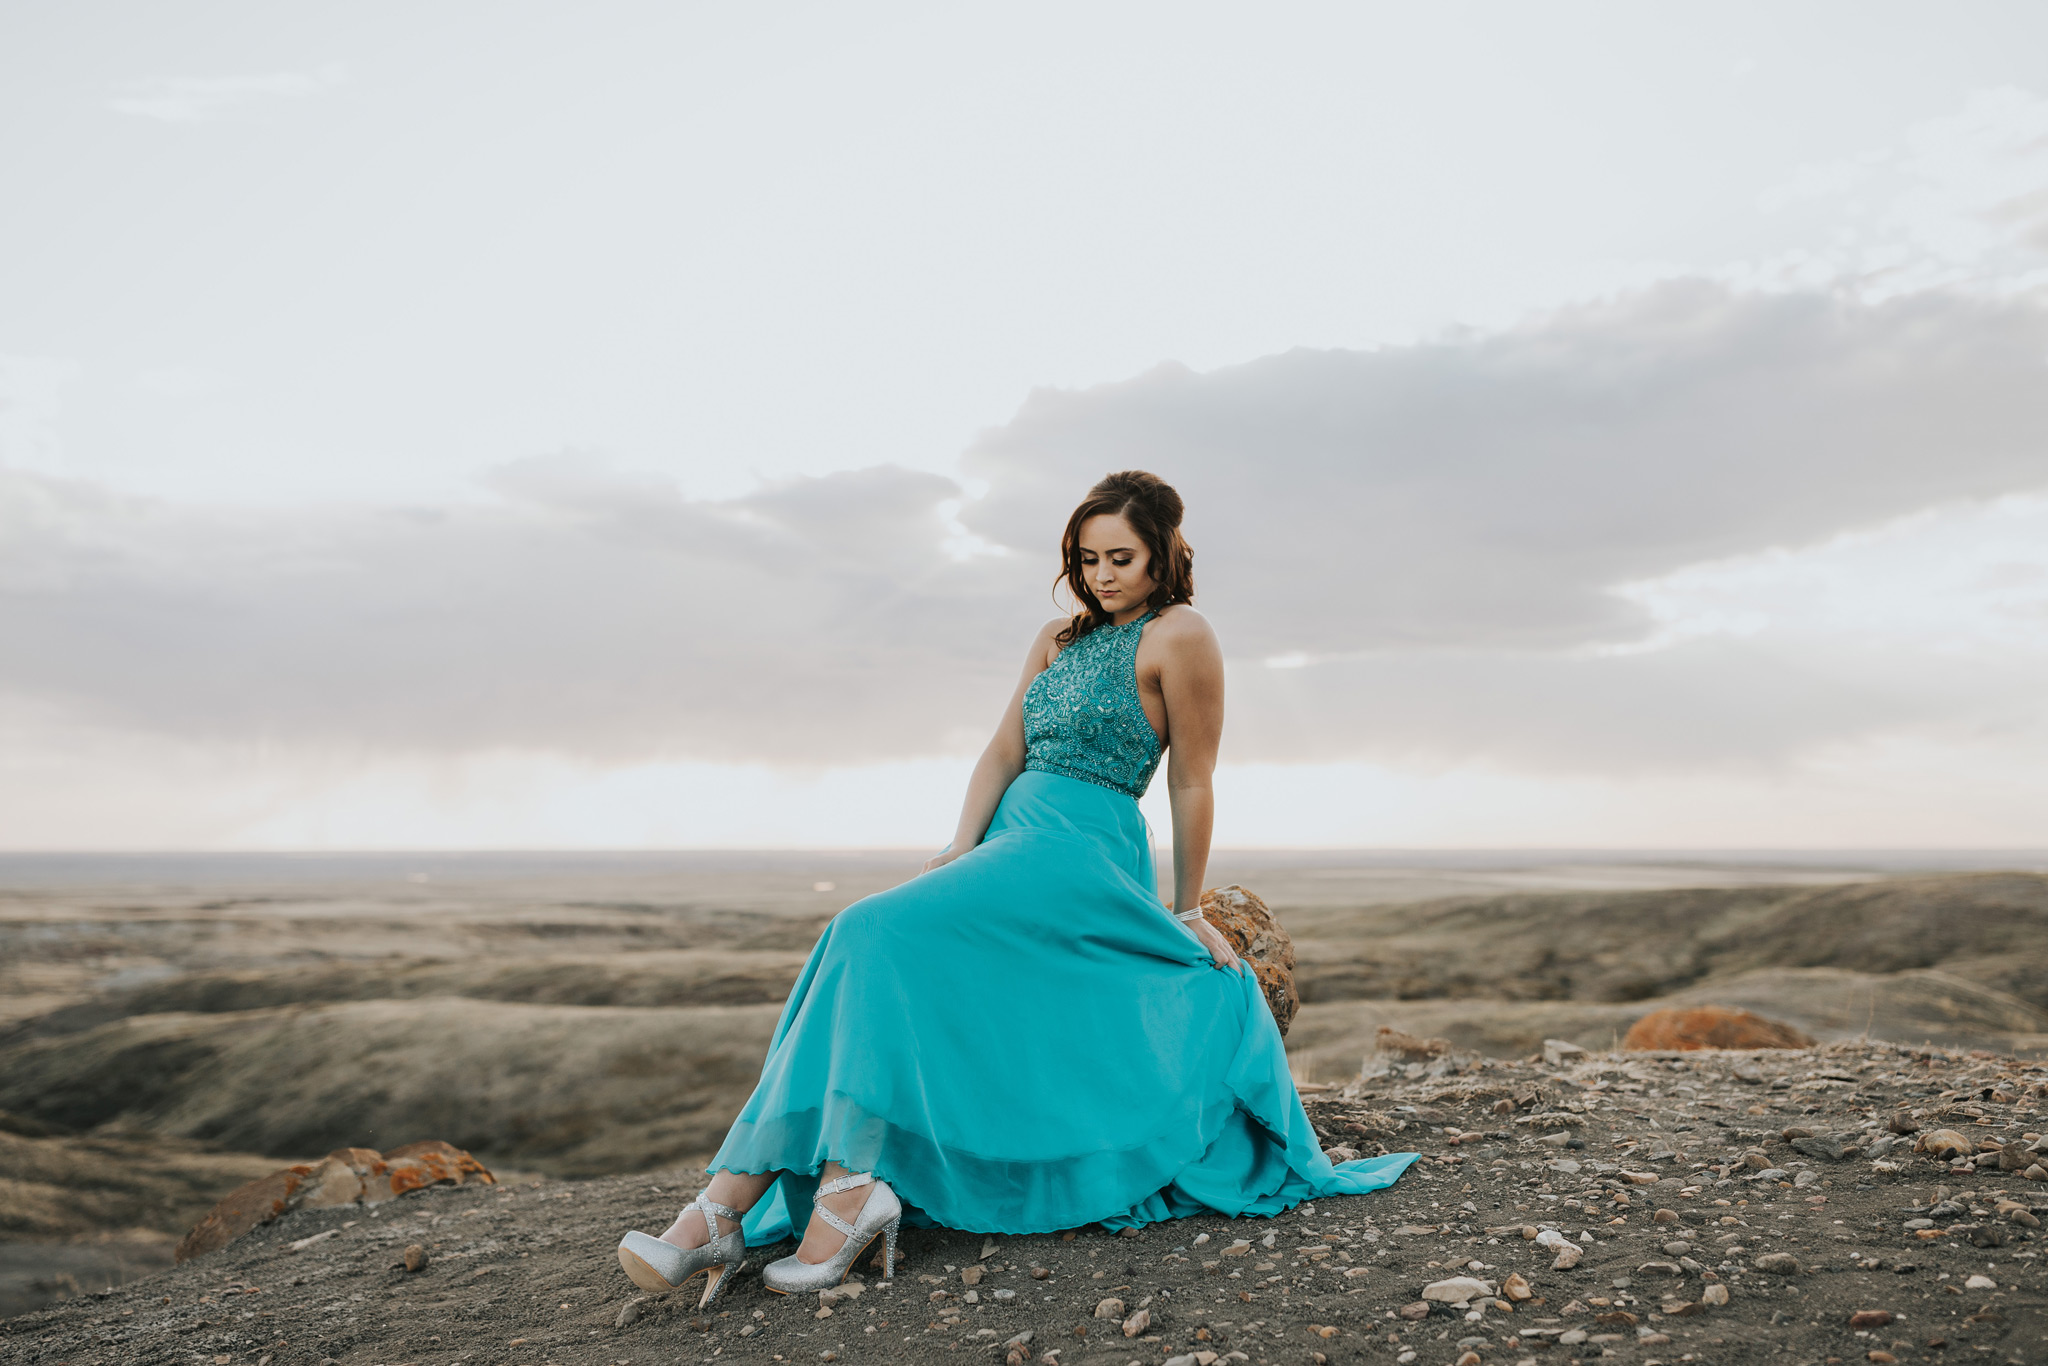 graduate in turquoise prom dress with beading on top looking down at sparkly high heels